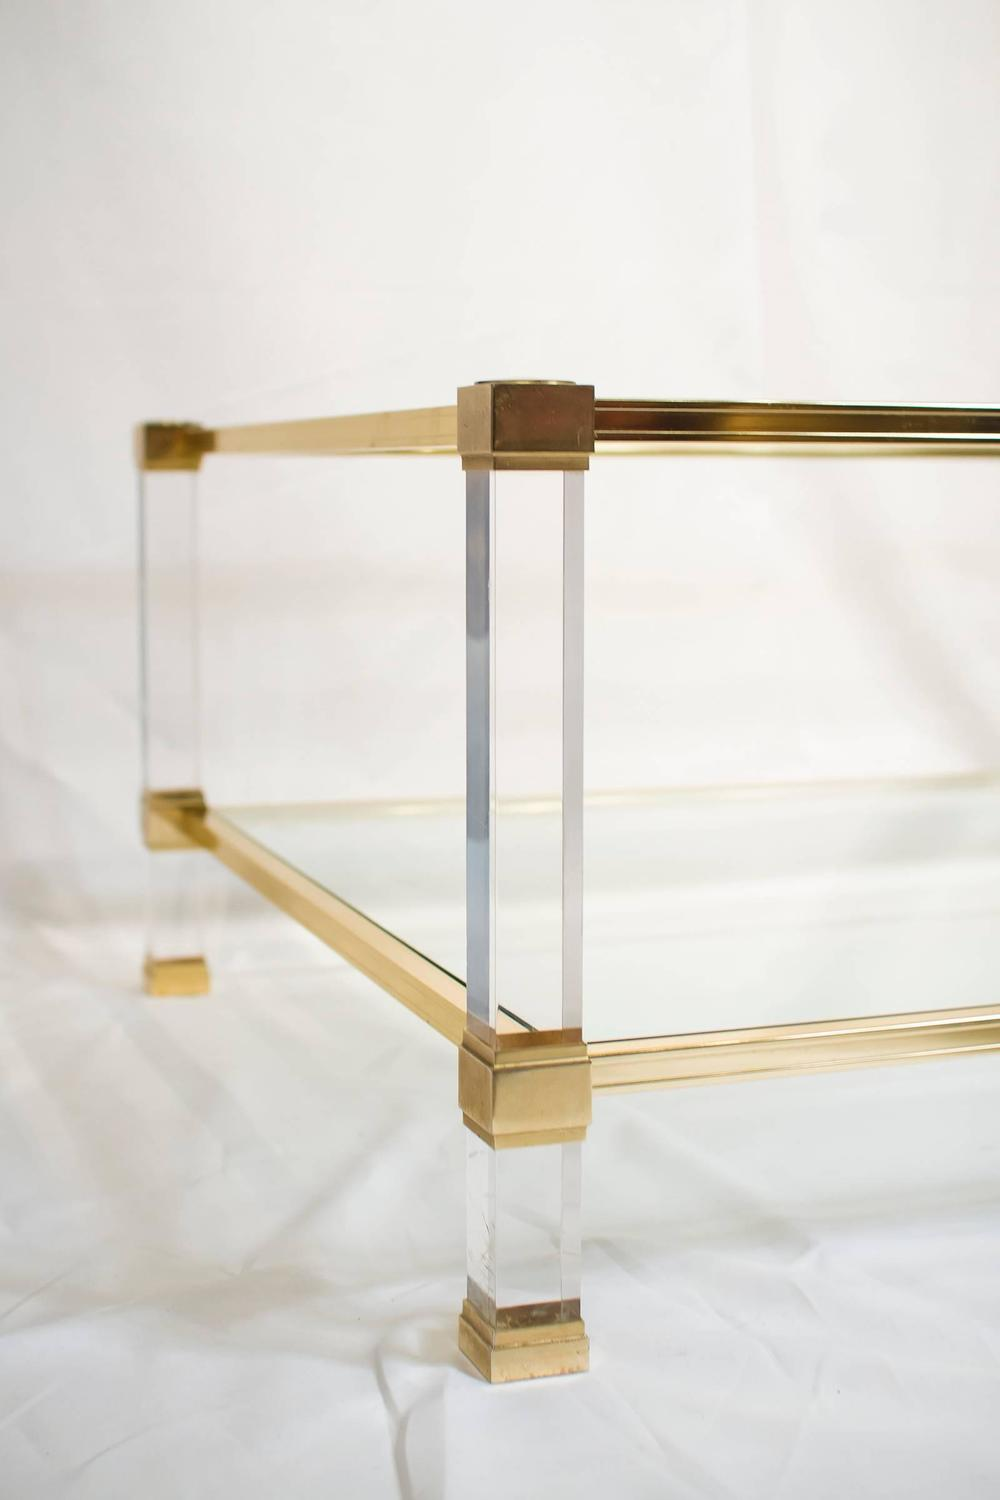 Lucite and brass coffee table joevin ortjens galerie for Lucite and brass coffee table